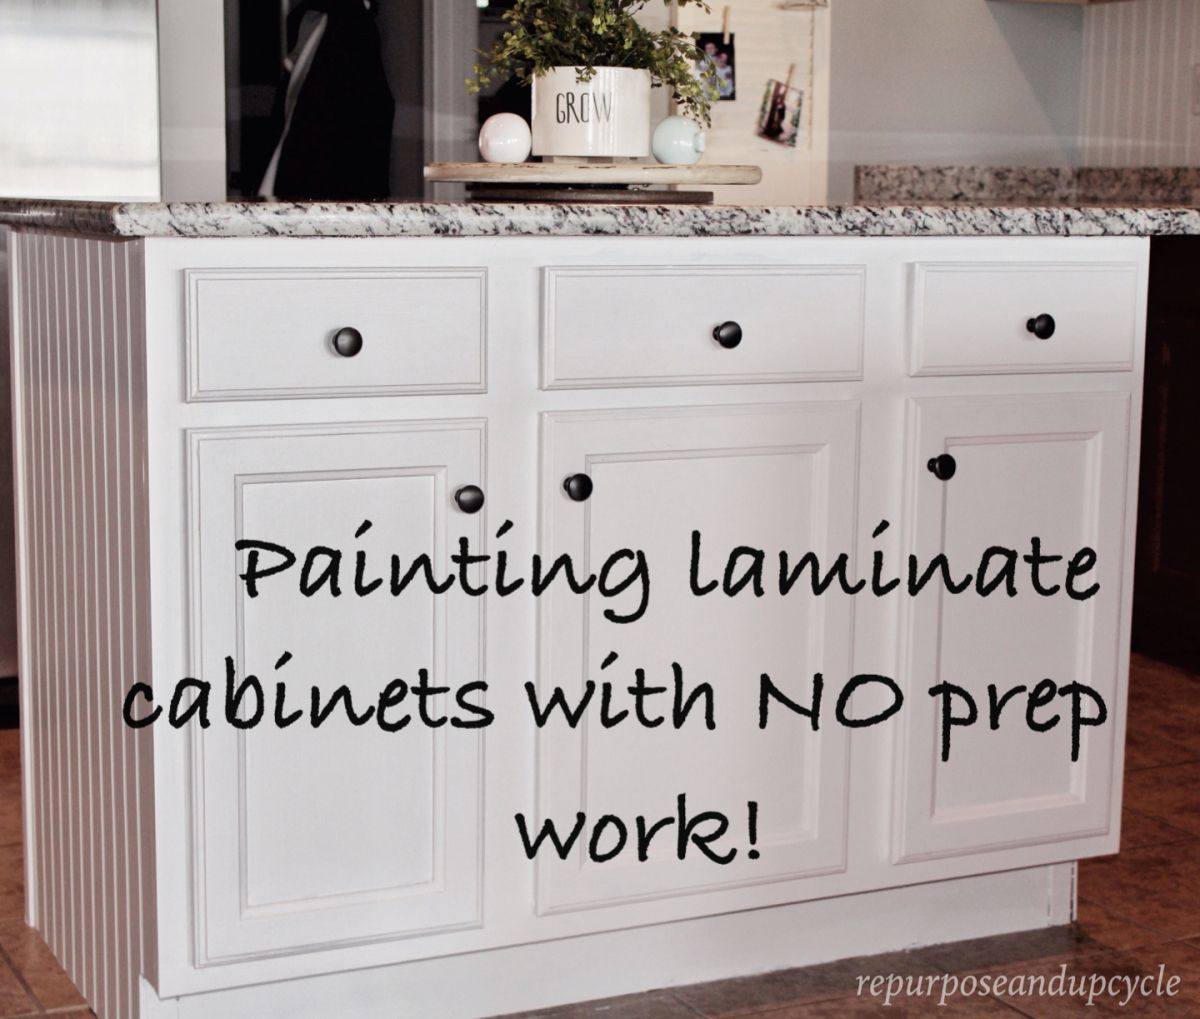 Painting laminate cabinets with no prep work kitchen painting laminate cabinets laminate - Painting wood laminate kitchen cabinets ...